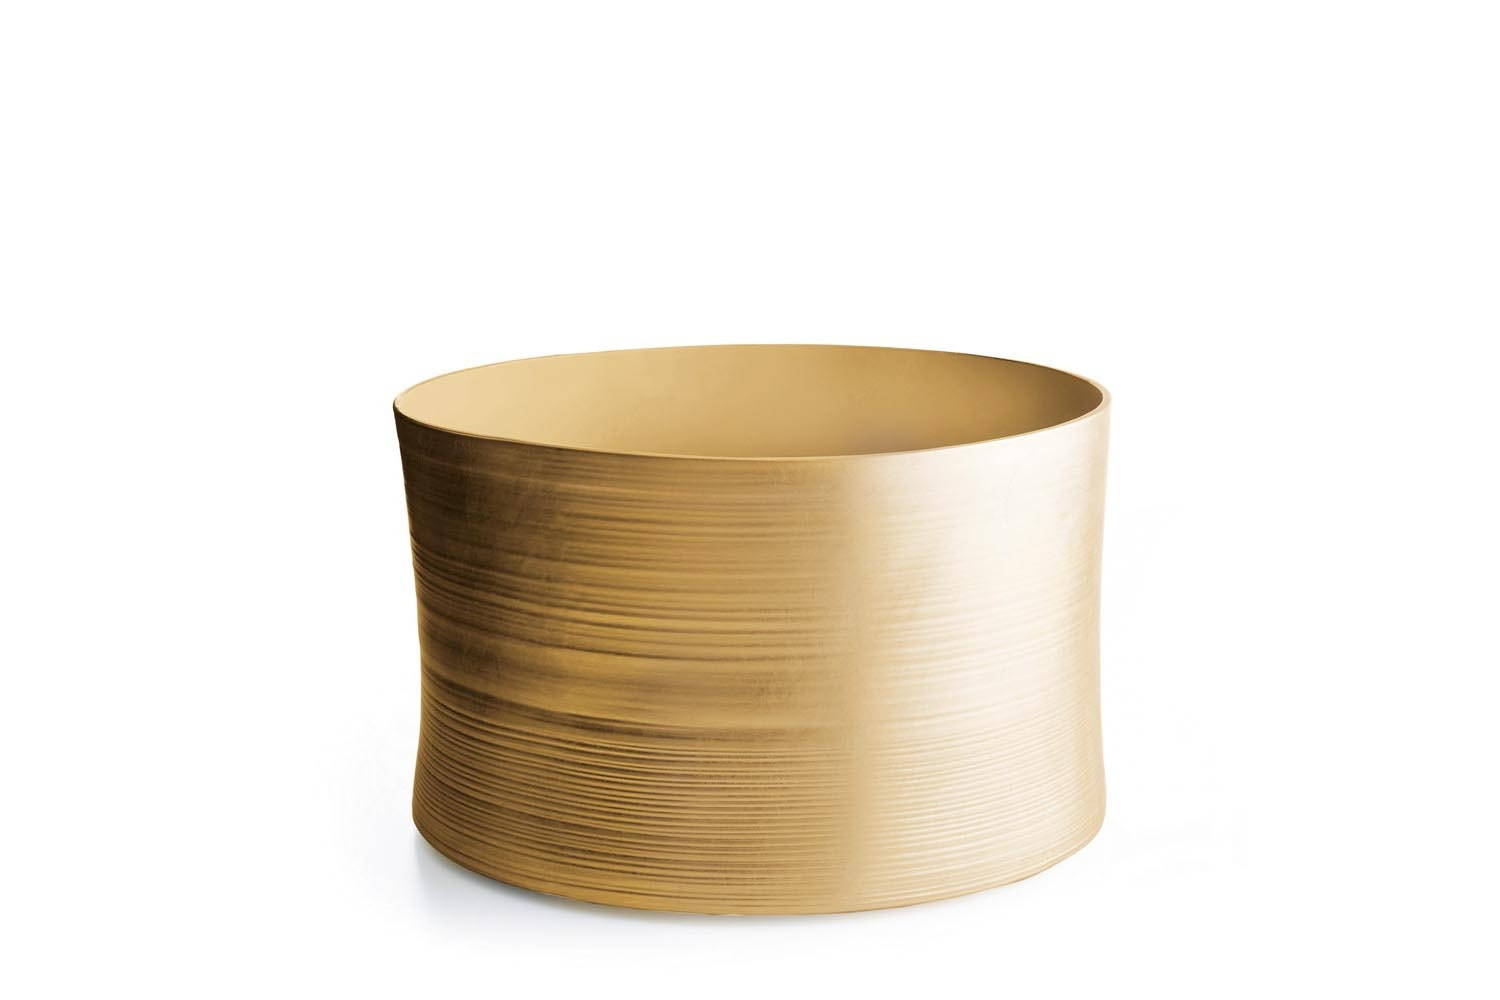 Gold Collection Bowl by Marcel Wanders for B&B Italia